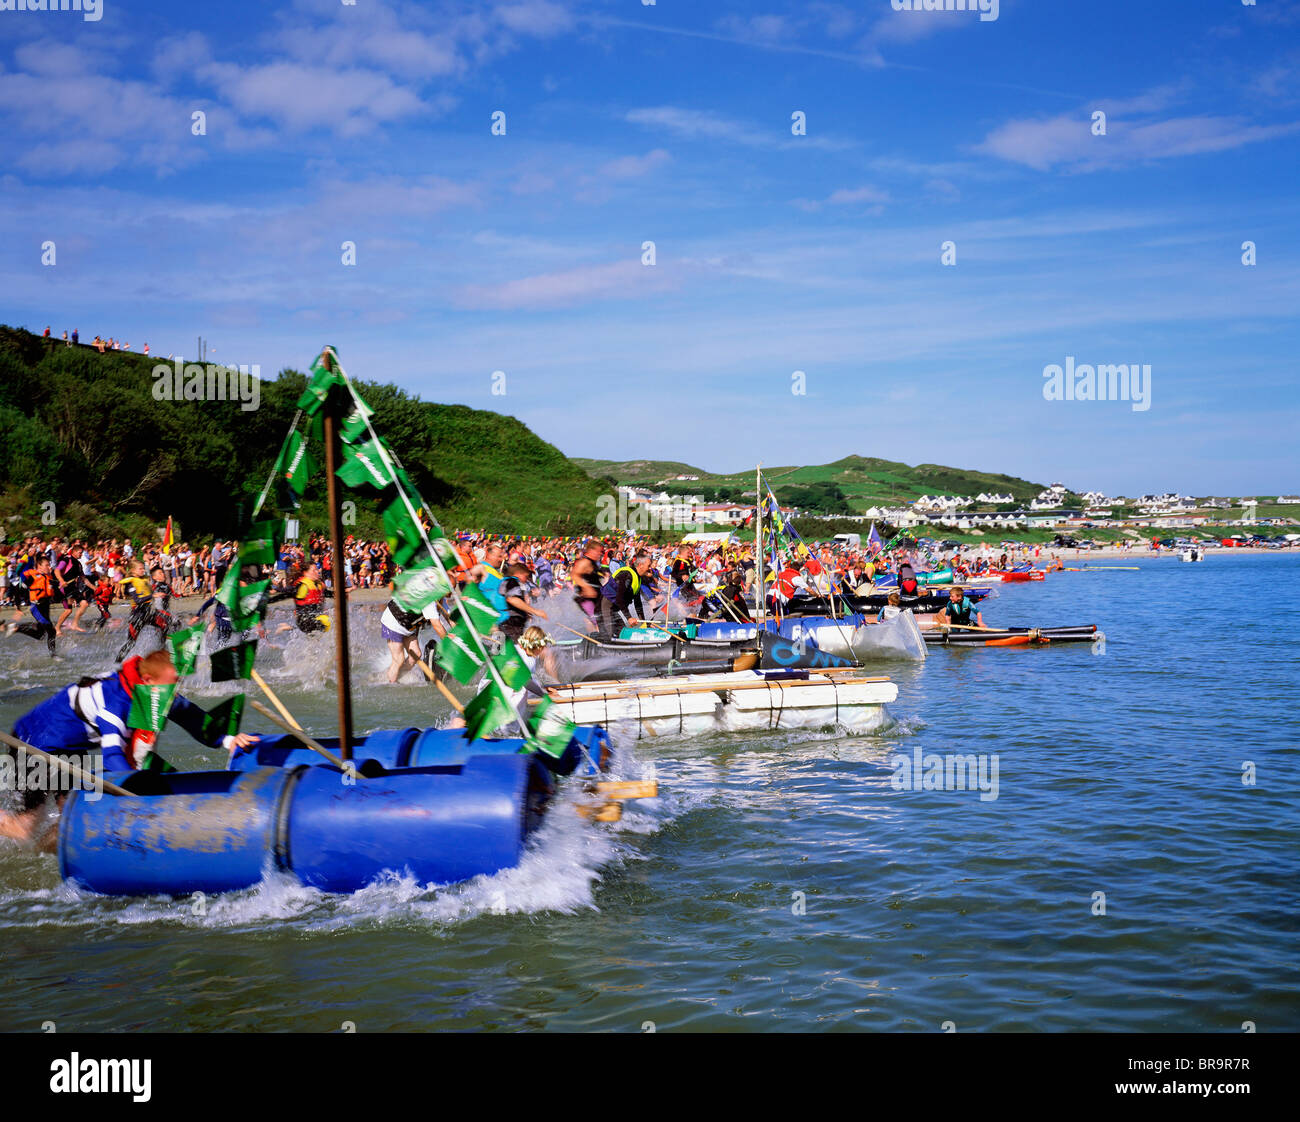 Downings Ireland  city images : Downings Raft Race, Co. Donegal, Ireland Stock Photo, Royalty Free ...